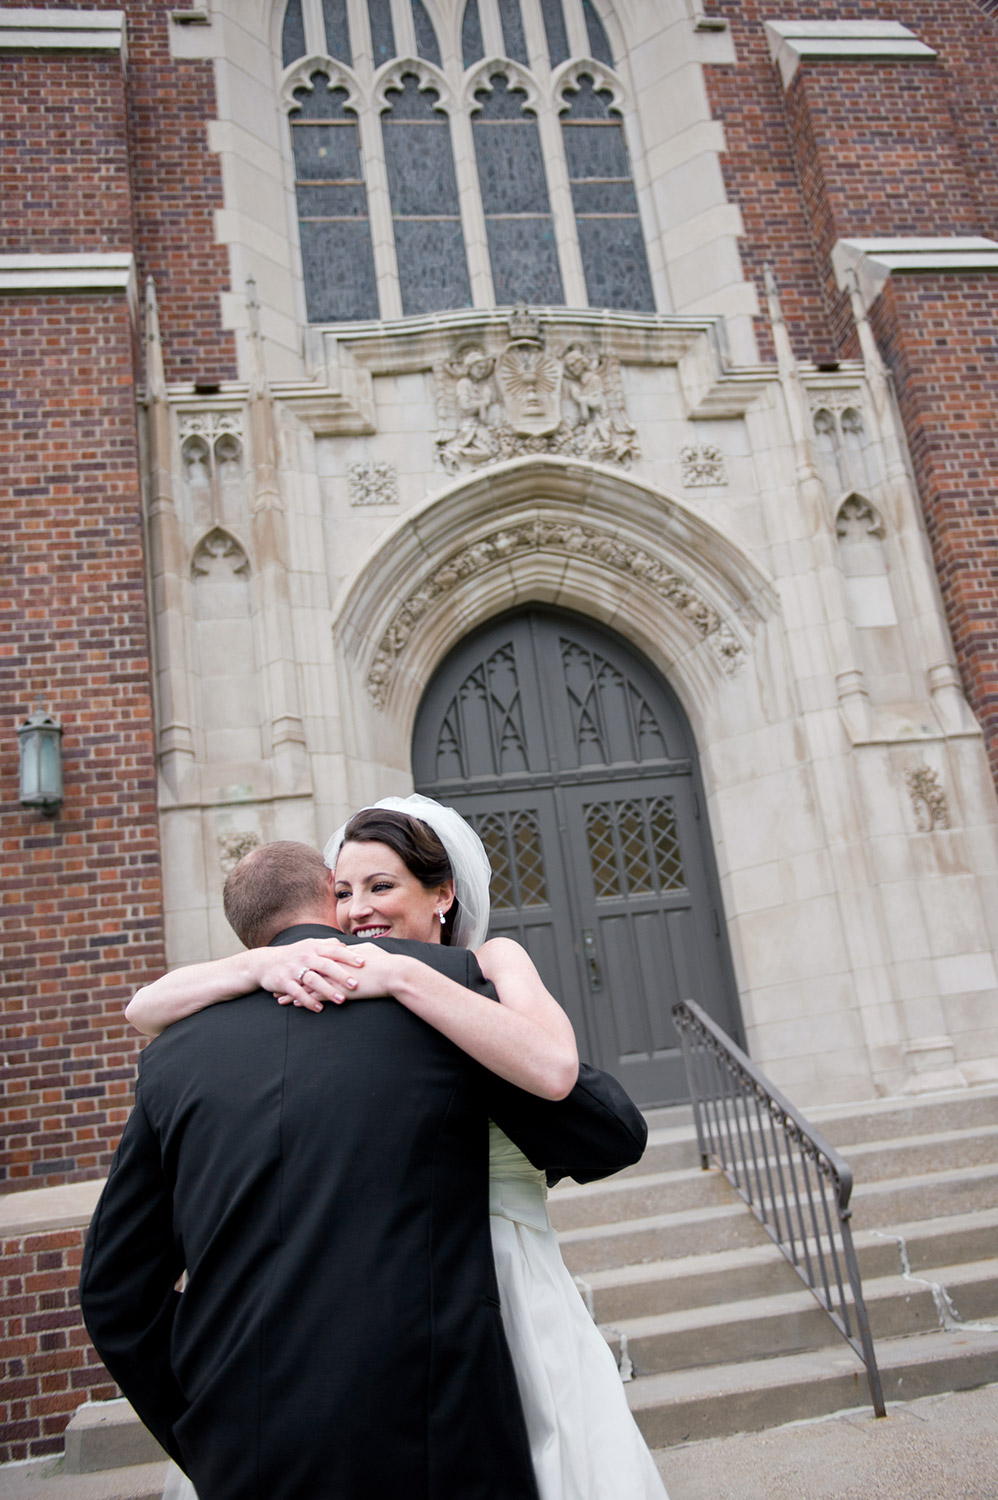 wedding-photography-minneapolis-mark-kegans-422.jpg